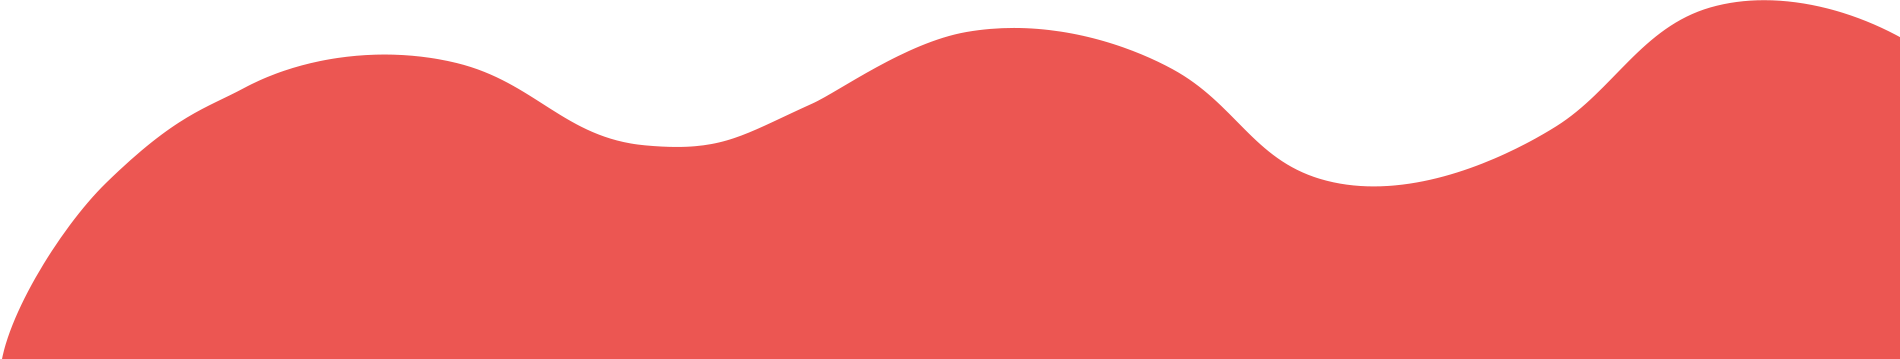 Red Background Wave